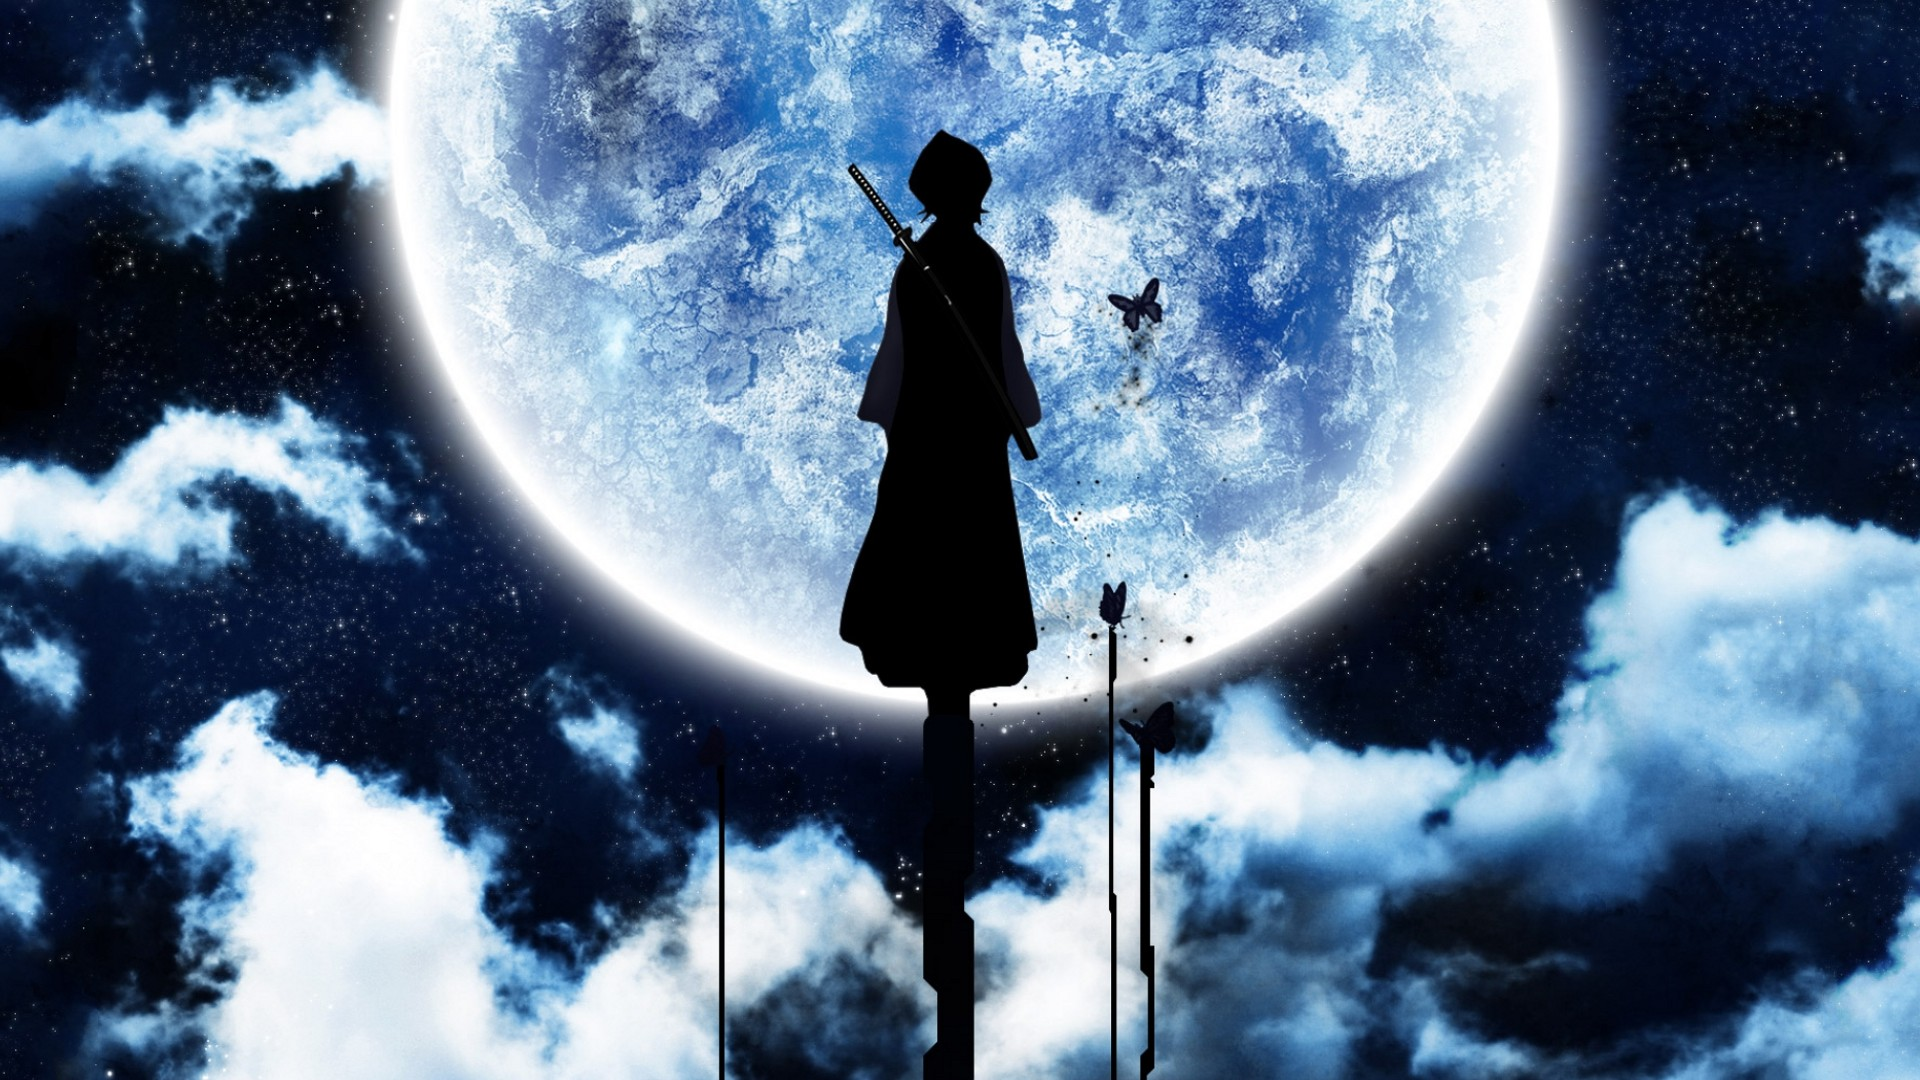 Rukia themed wallpaper